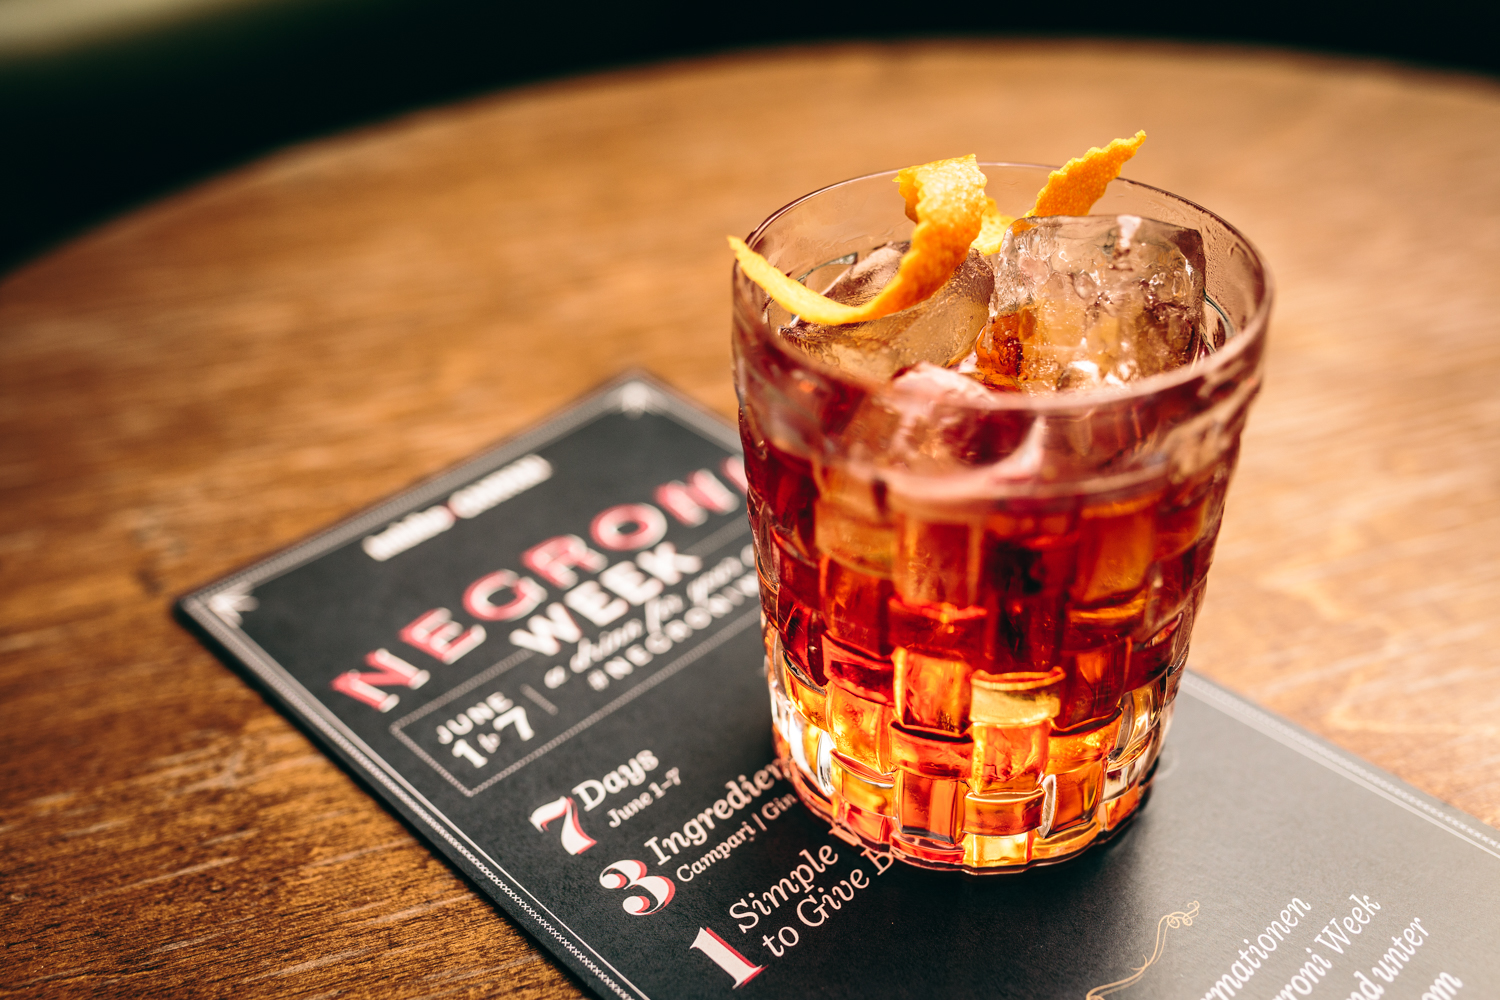 Старт NEGRONI WEEK 2016: THERE'S NO CHEERS WITHOUT A CAUSE